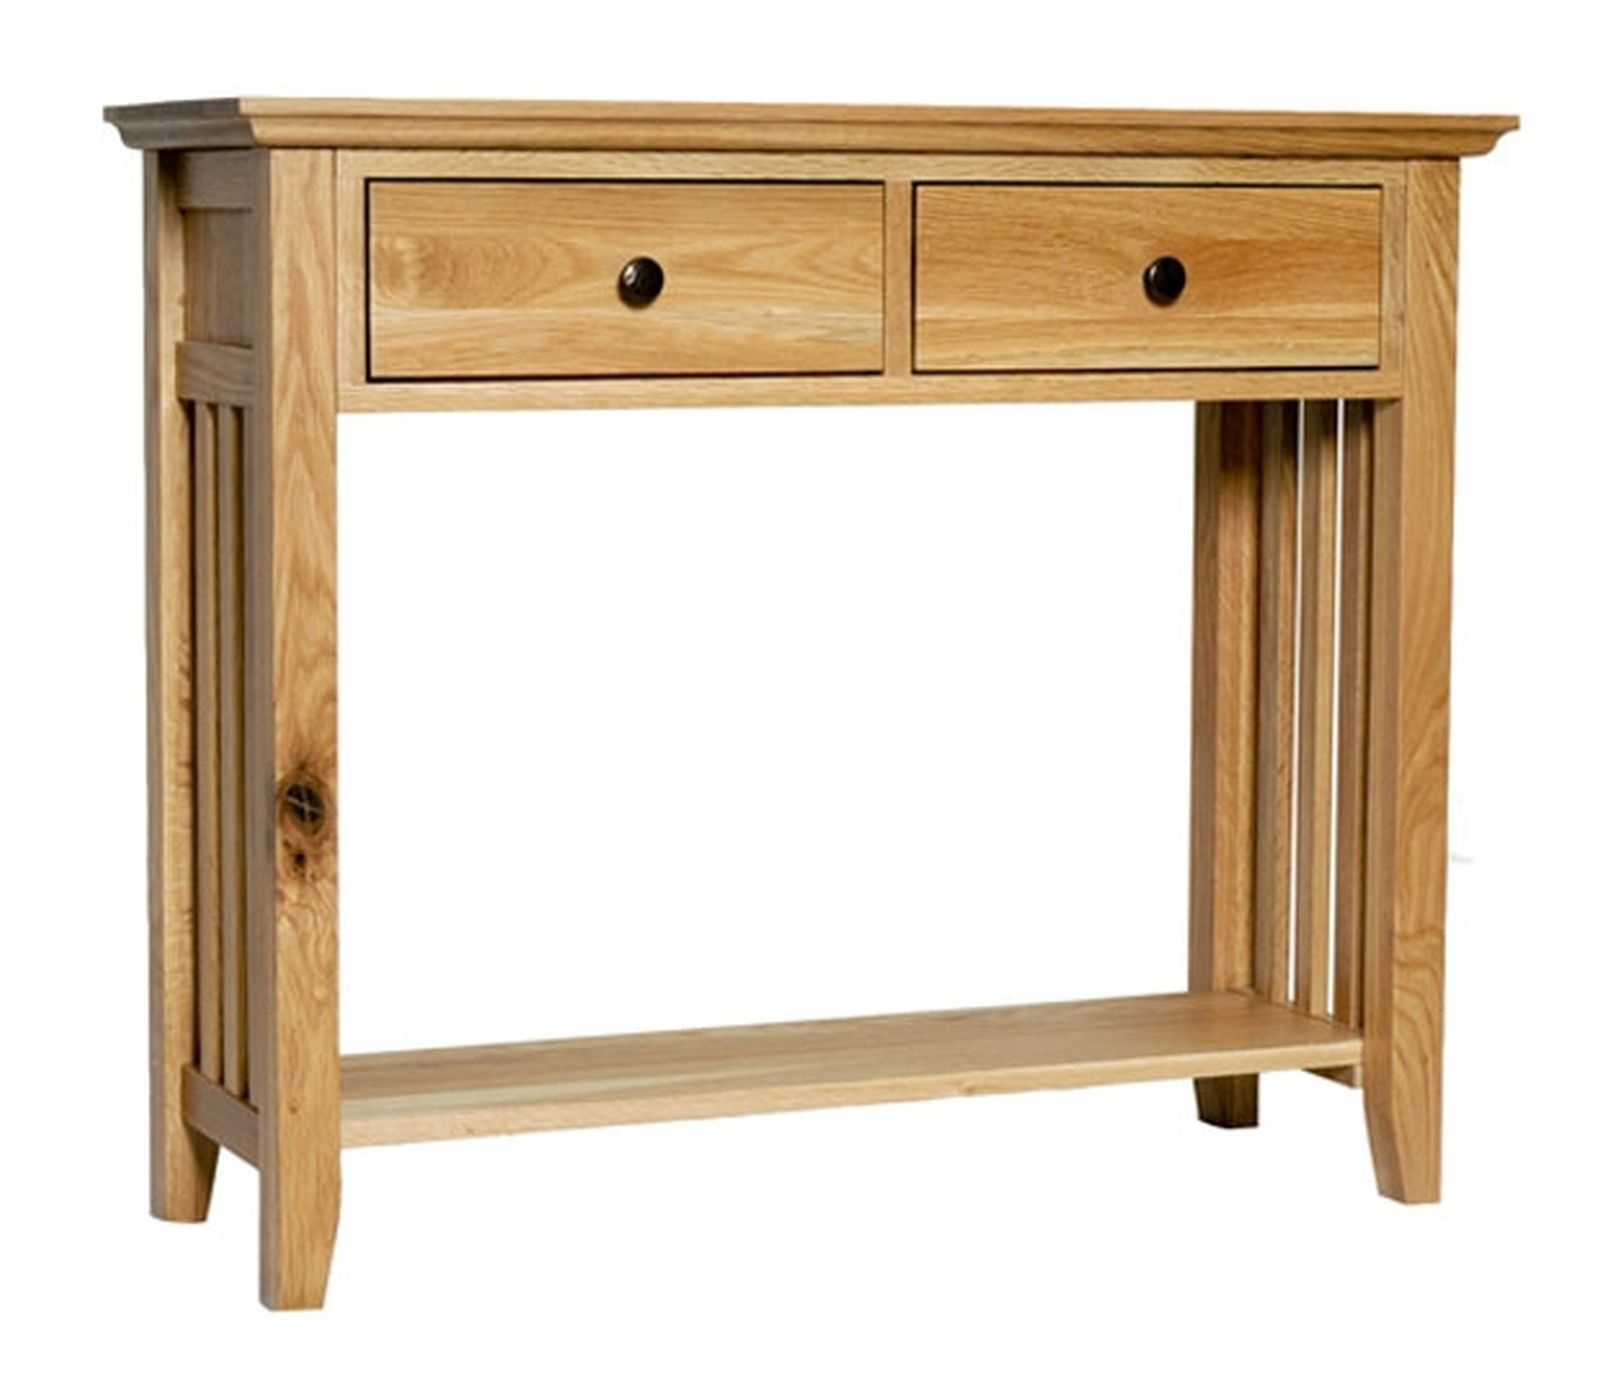 Belfry solid oak furniture hallway console hall table with for Solid oak furniture